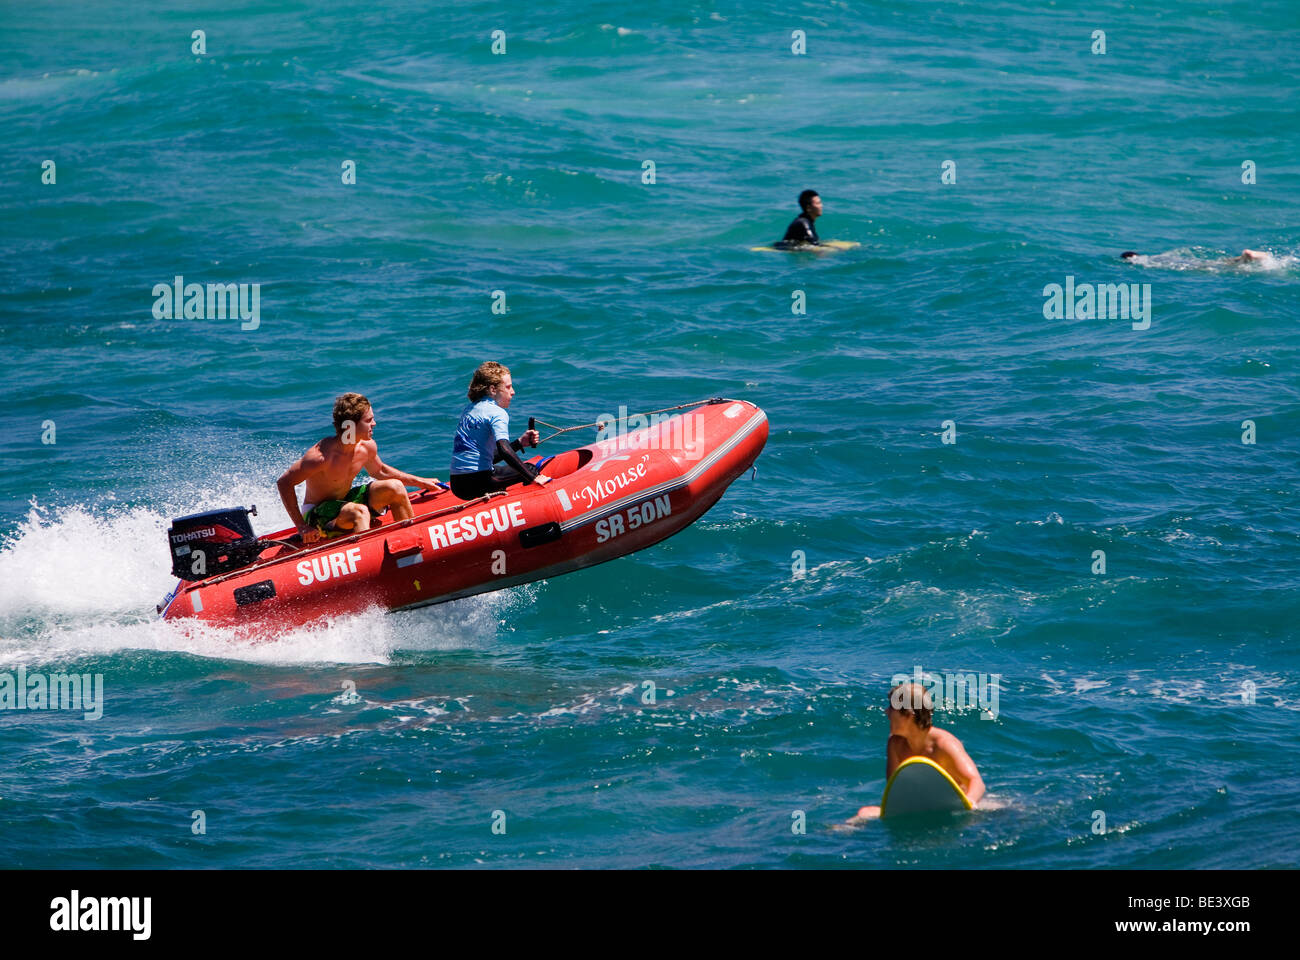 Surf lifesavers practice their surf rescue skills at Manly Beach. Sydney, New South Wales, AUSTRALIA - Stock Image